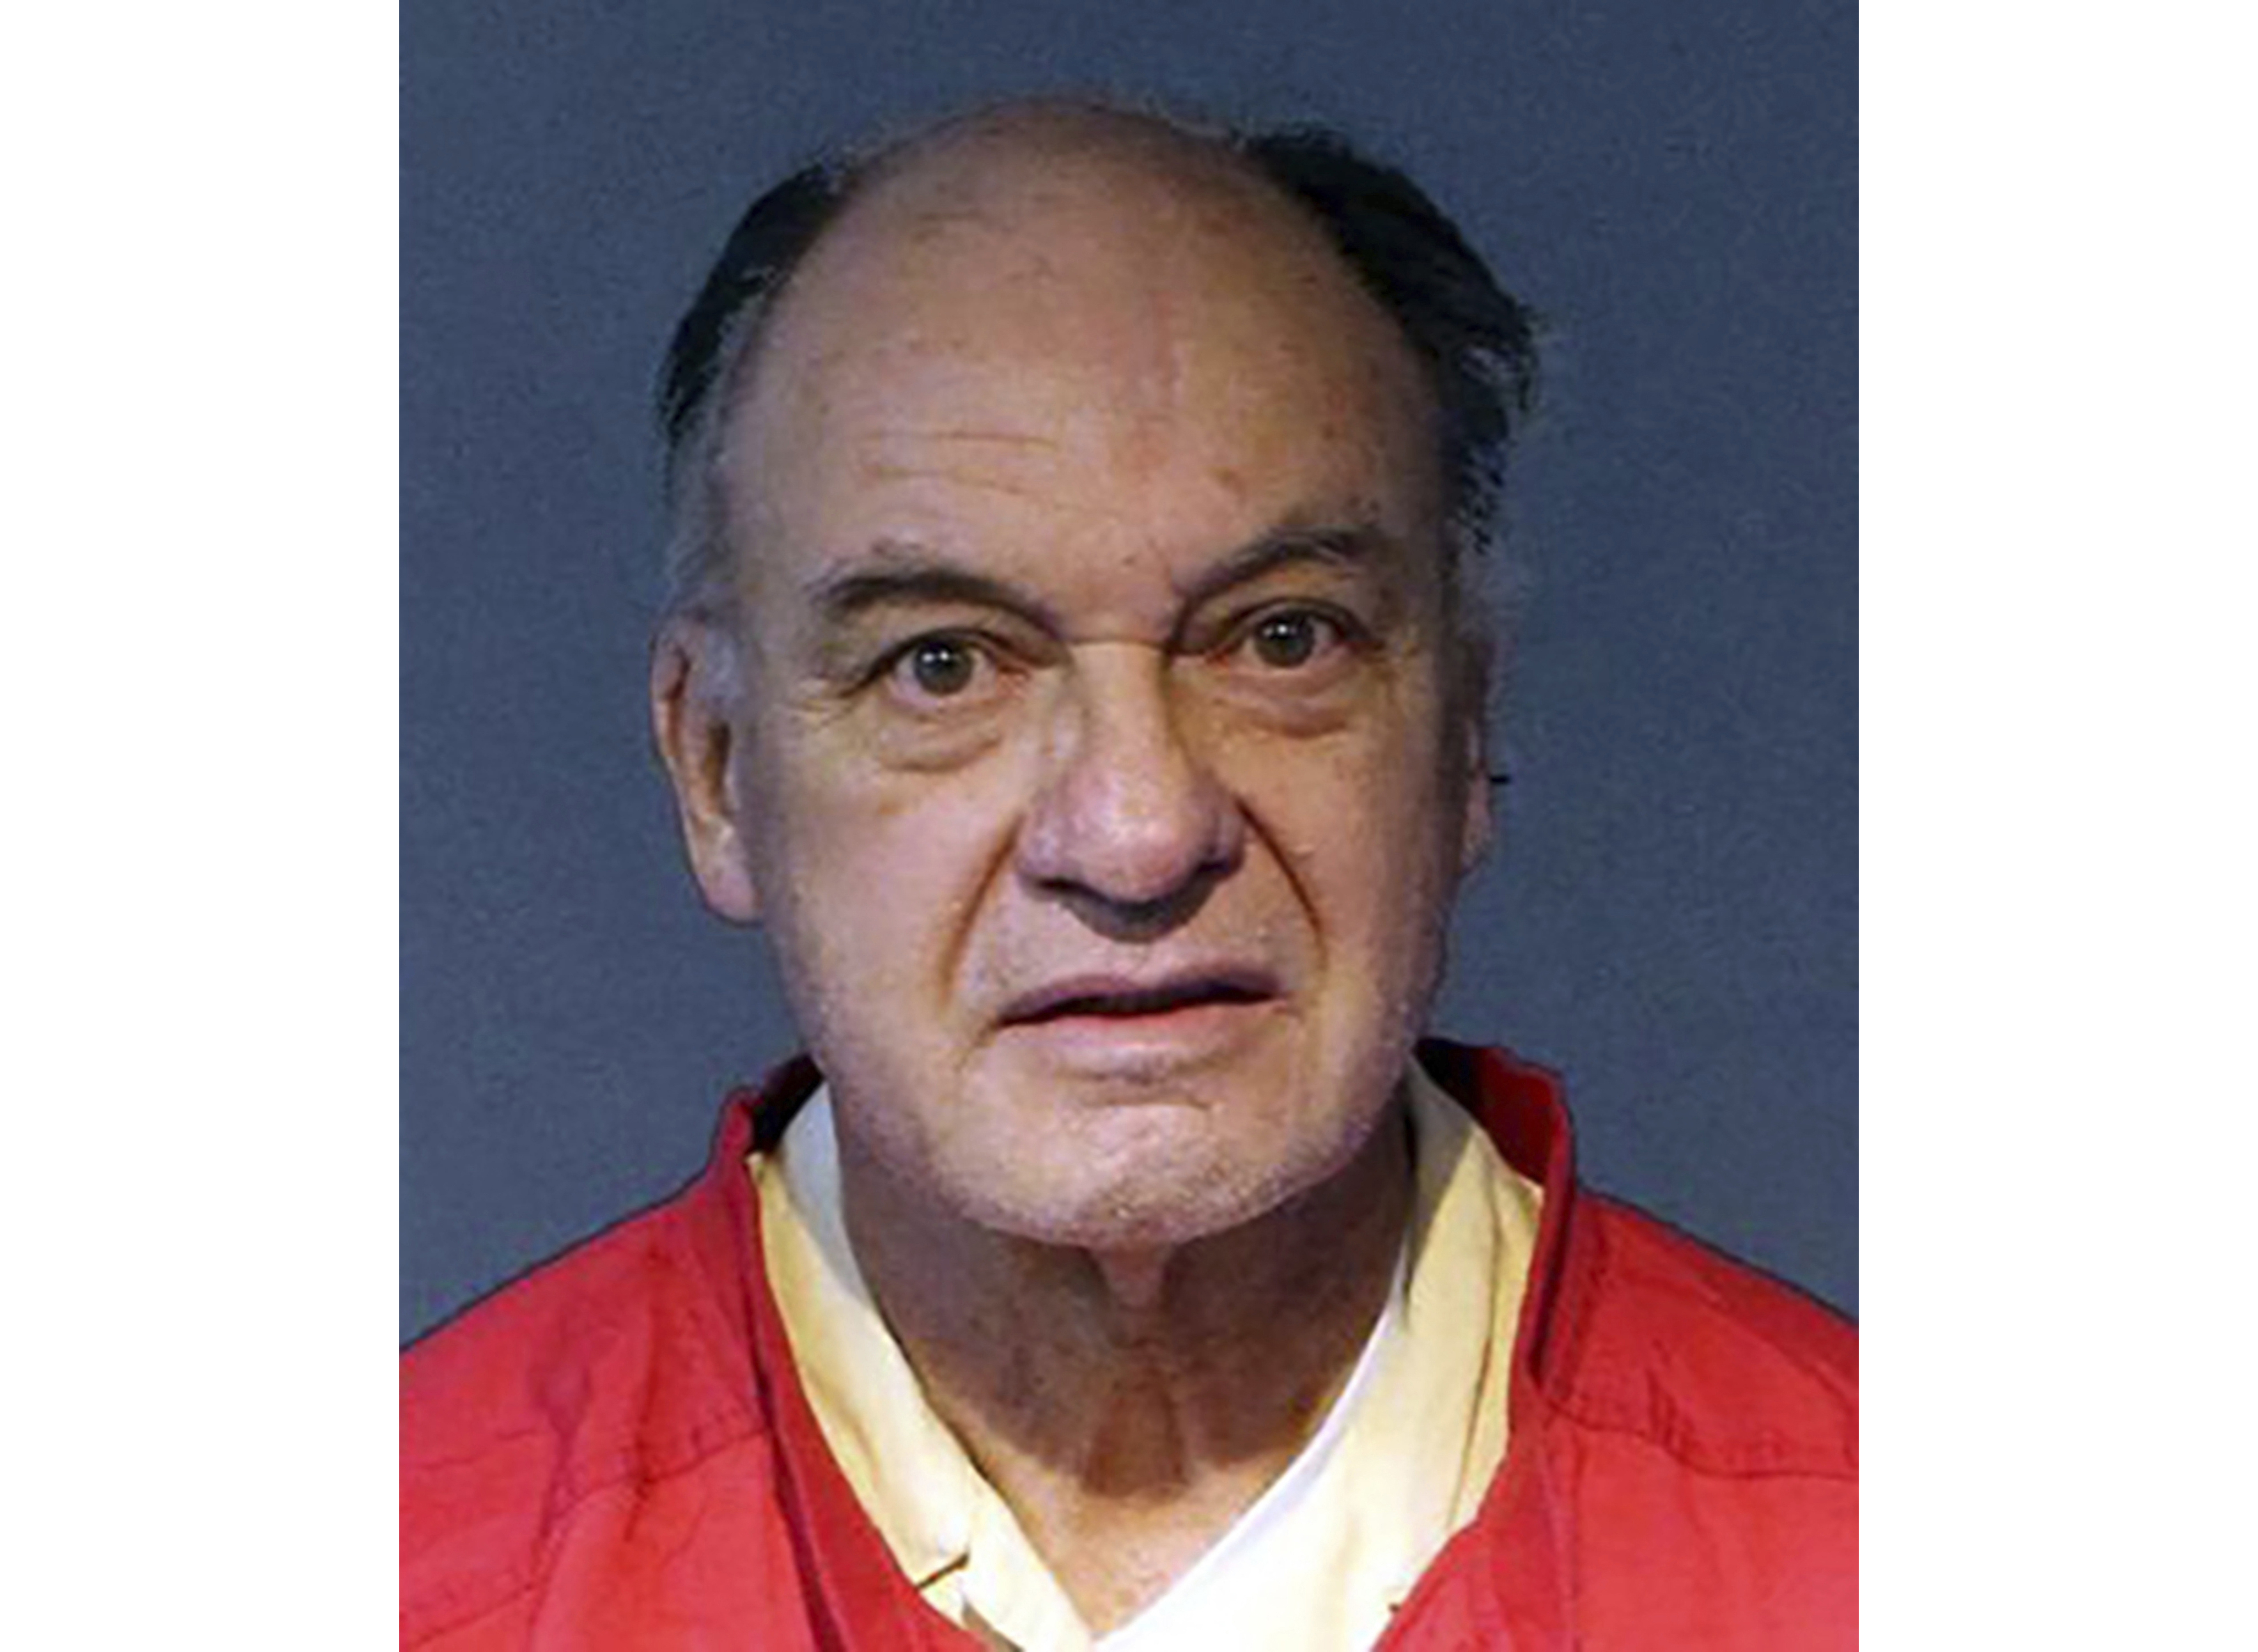 This undated photo provided by the Washoe County Sheriff's Office shows Charles Gary Sullivan, 73, of Flagstaff, Ariz., following his booking on Nov. 15, 2019, into the Washoe County Jail in Reno, Nev.